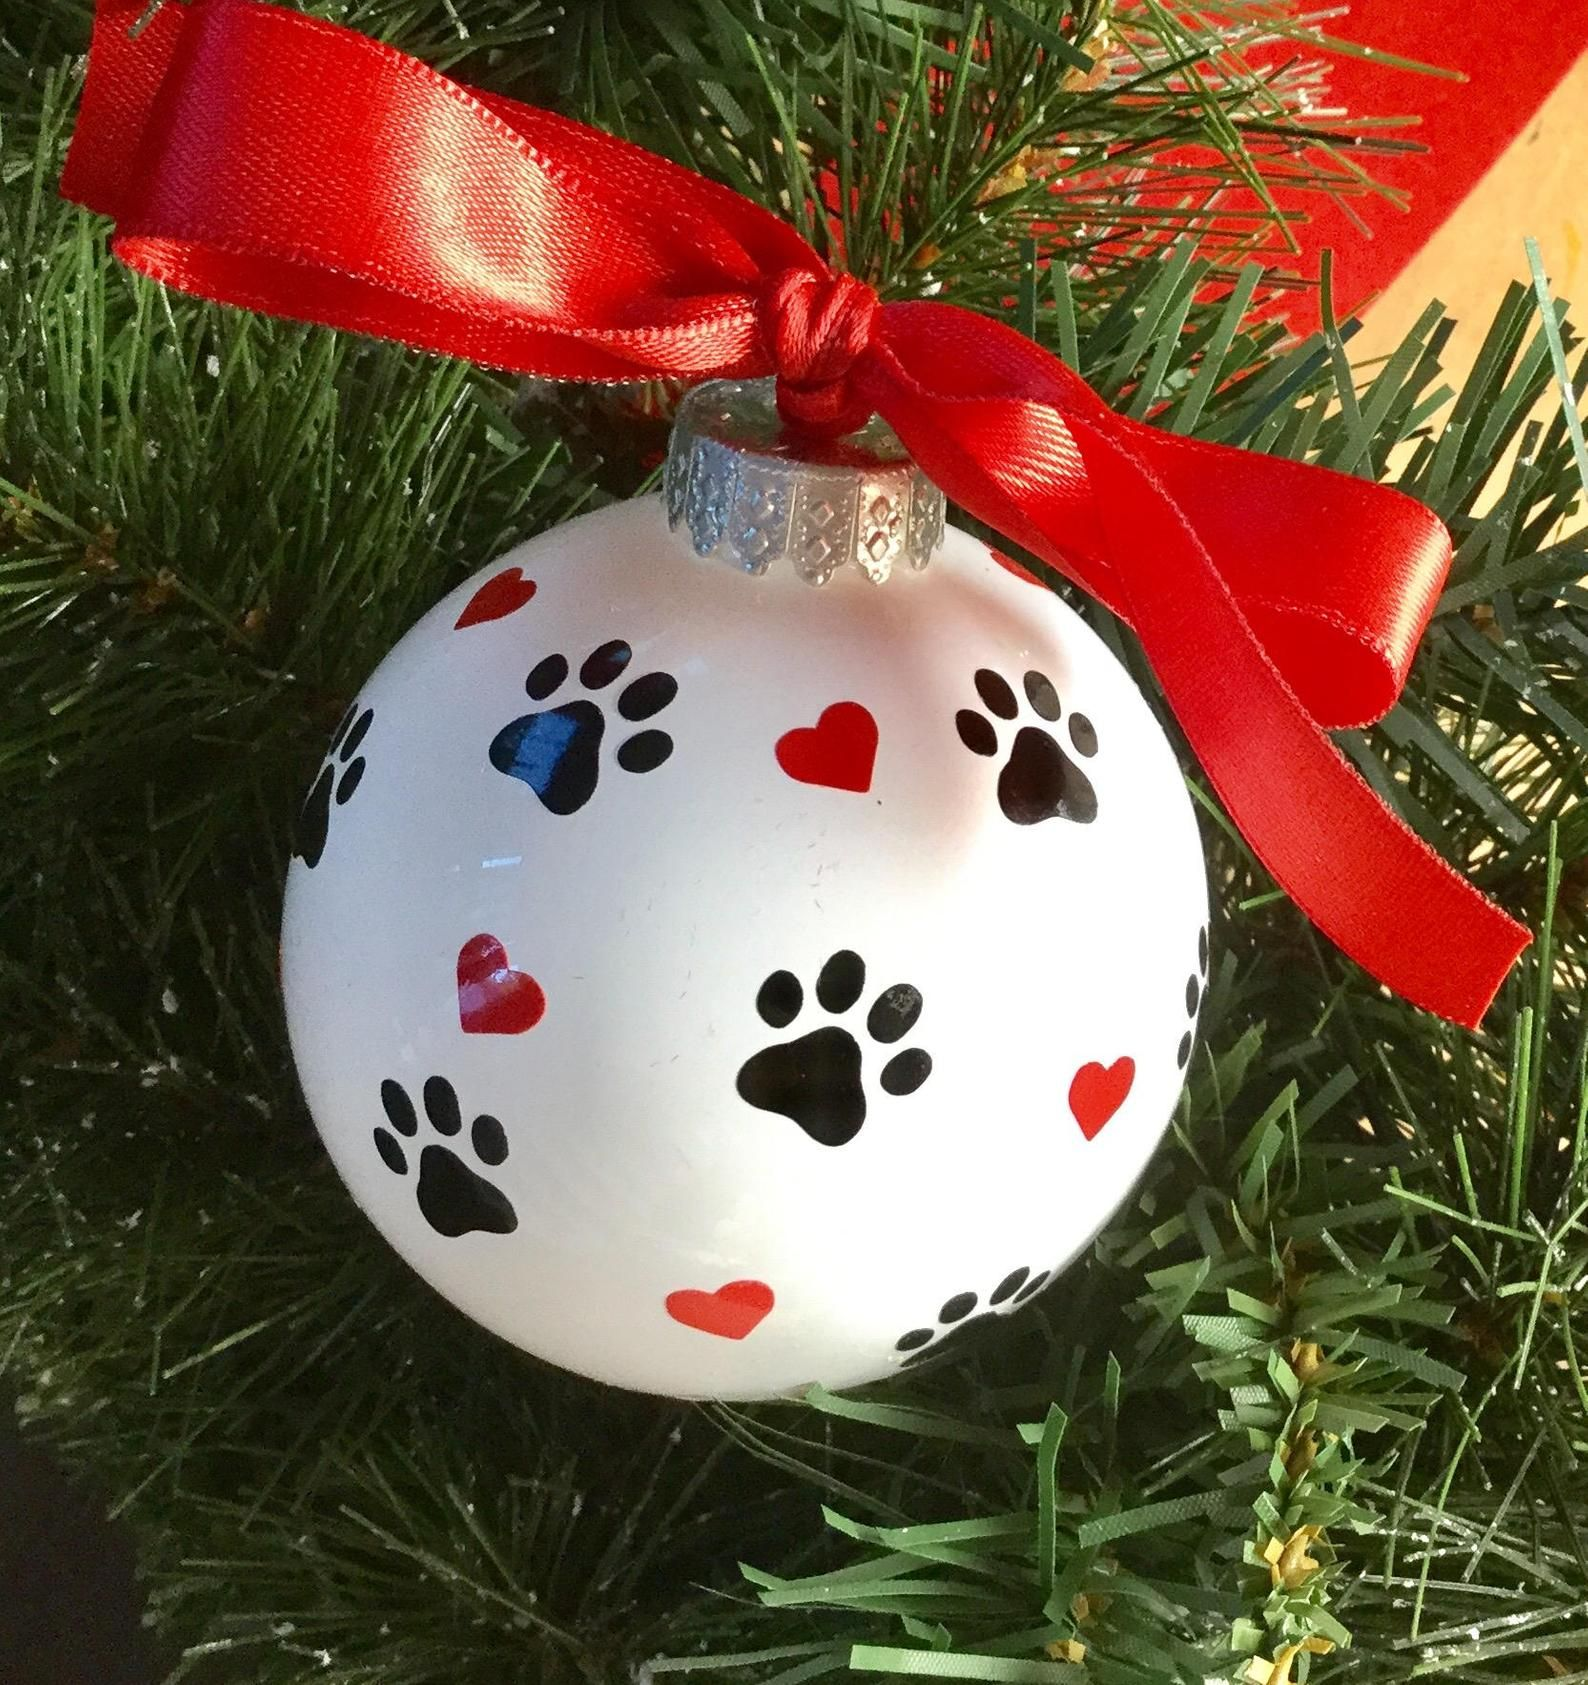 Dog Paw Print And Hearts Christmas Ornament Personalized Dog Etsy In 2020 Christmas Ornaments Homemade Christmas Ornaments Dog Christmas Ornaments